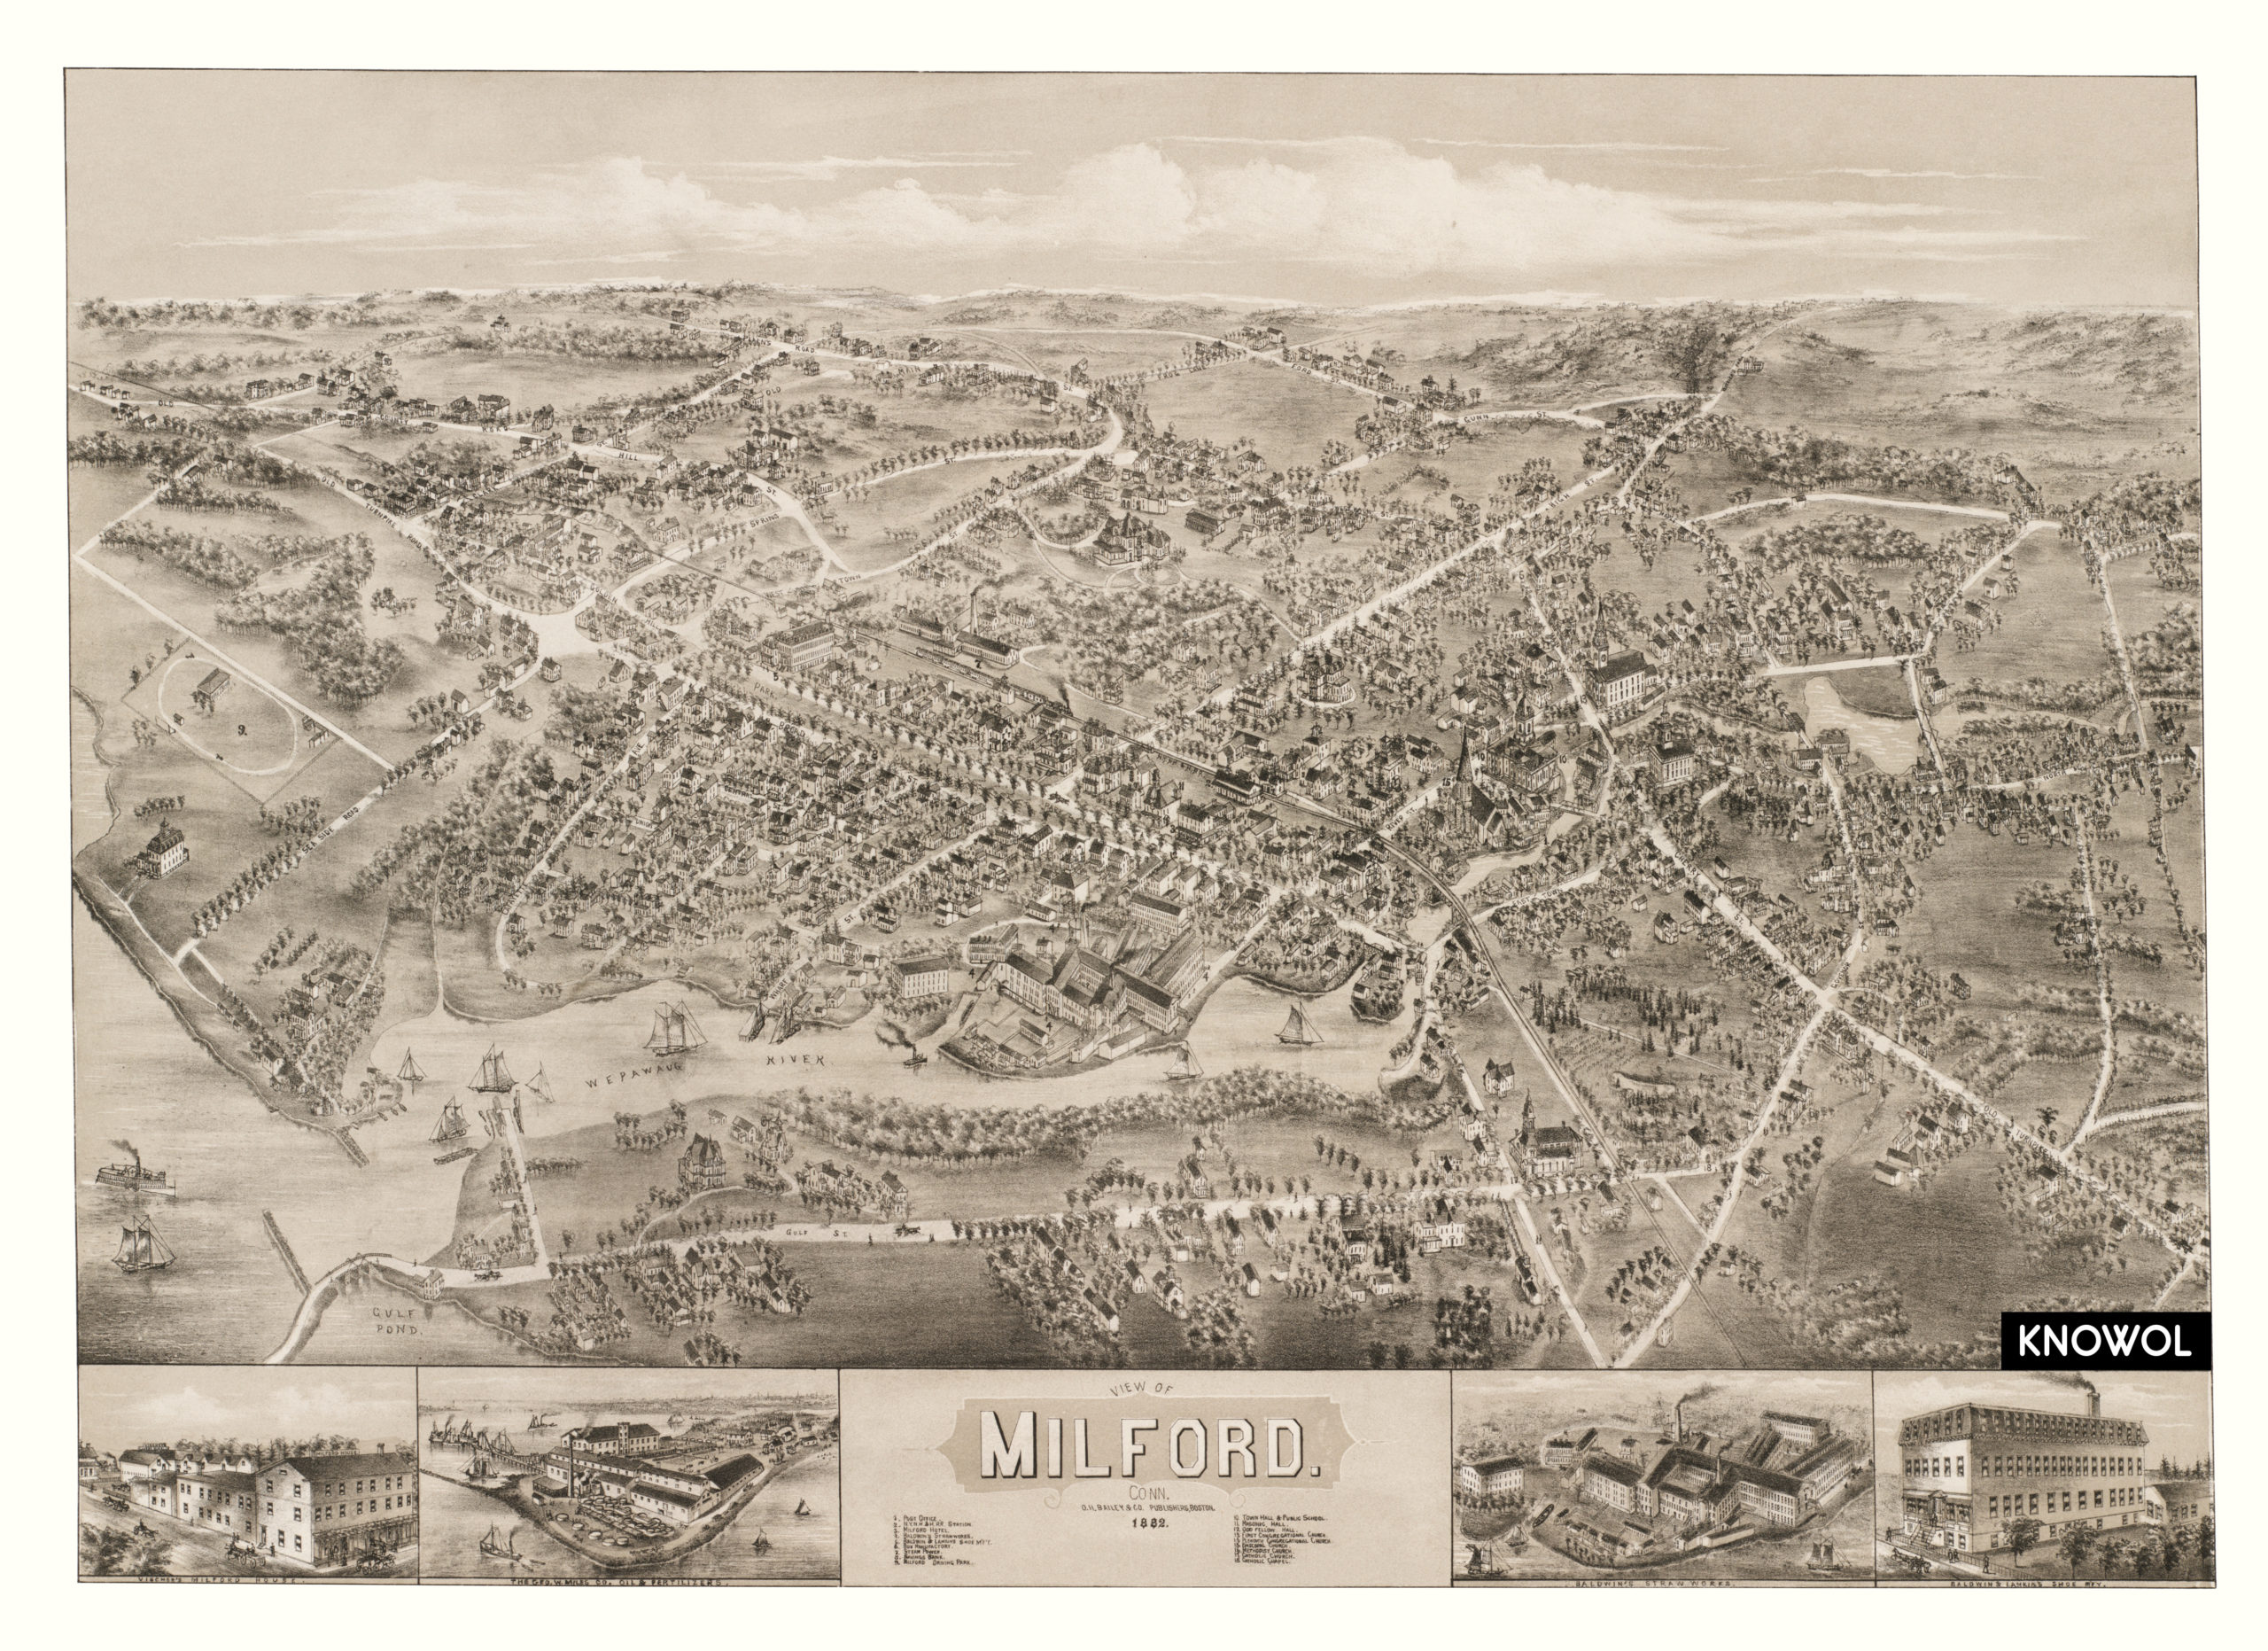 Beautiful vintage map of Milford CT from 1882 KNOWOL